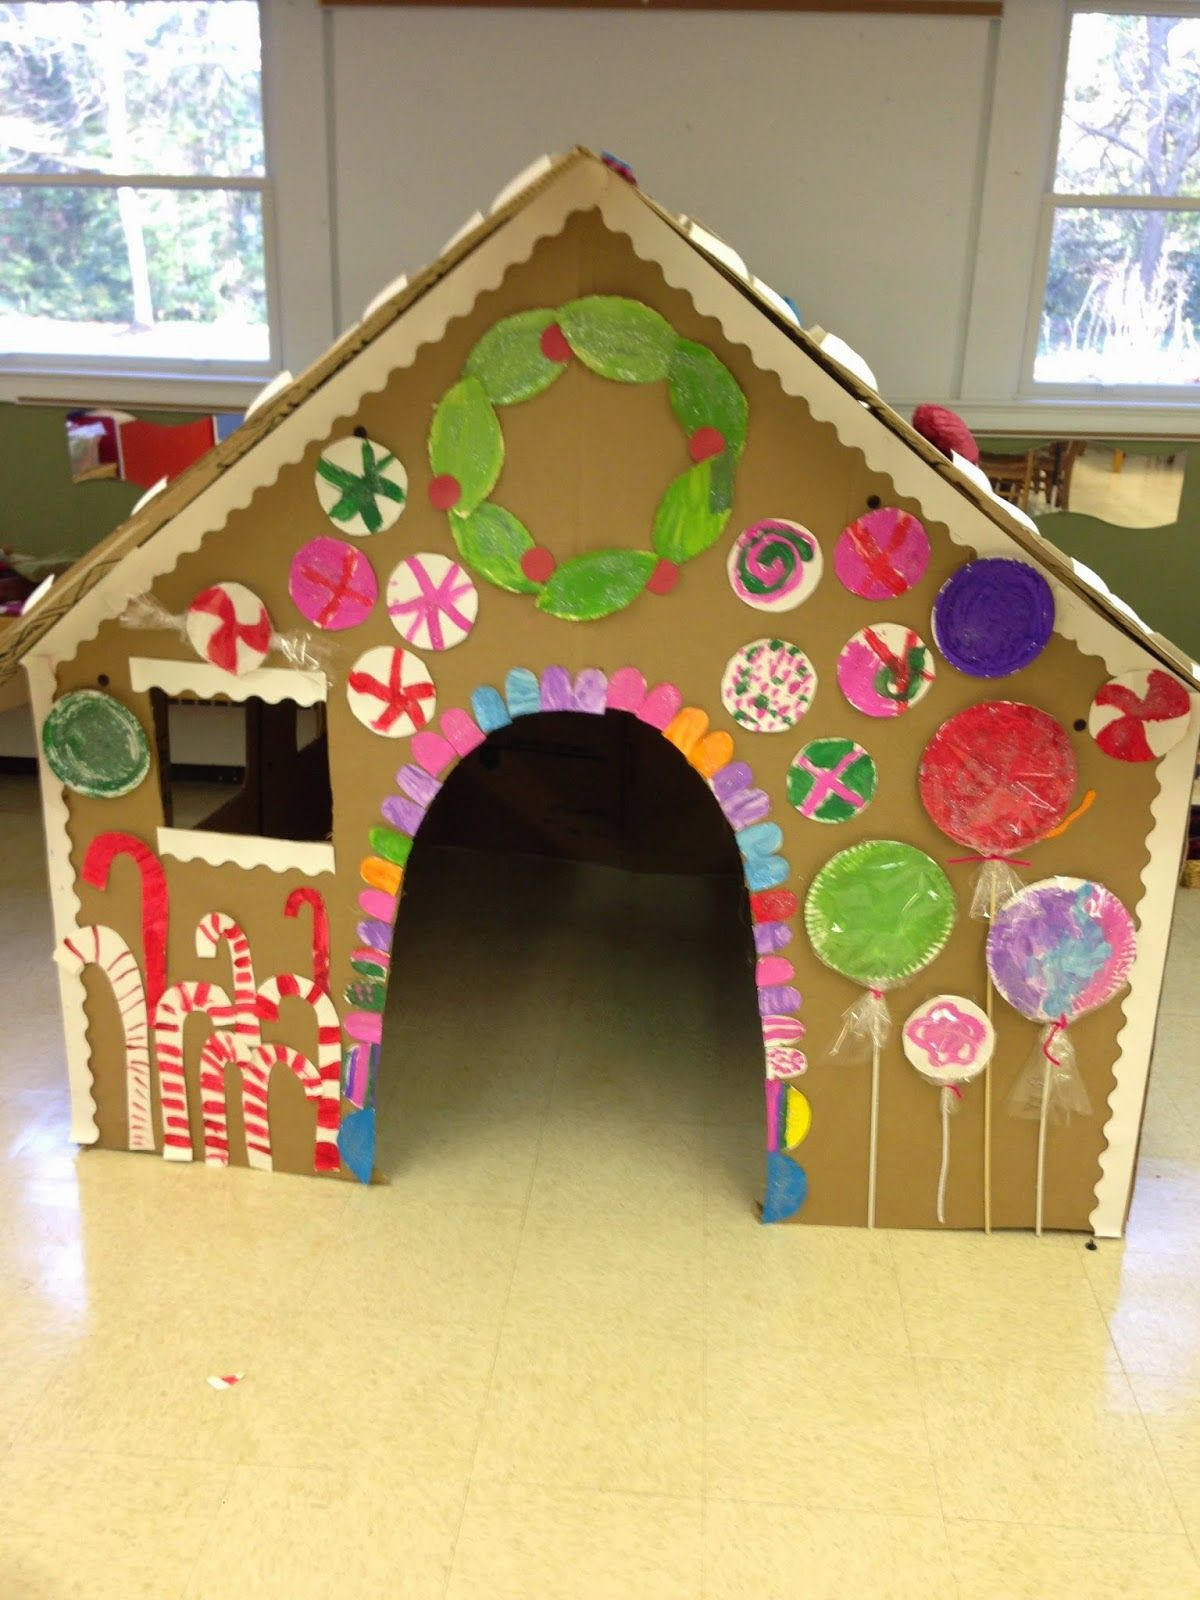 The Kids Are Loving The Life Size Gingerbread That I Build